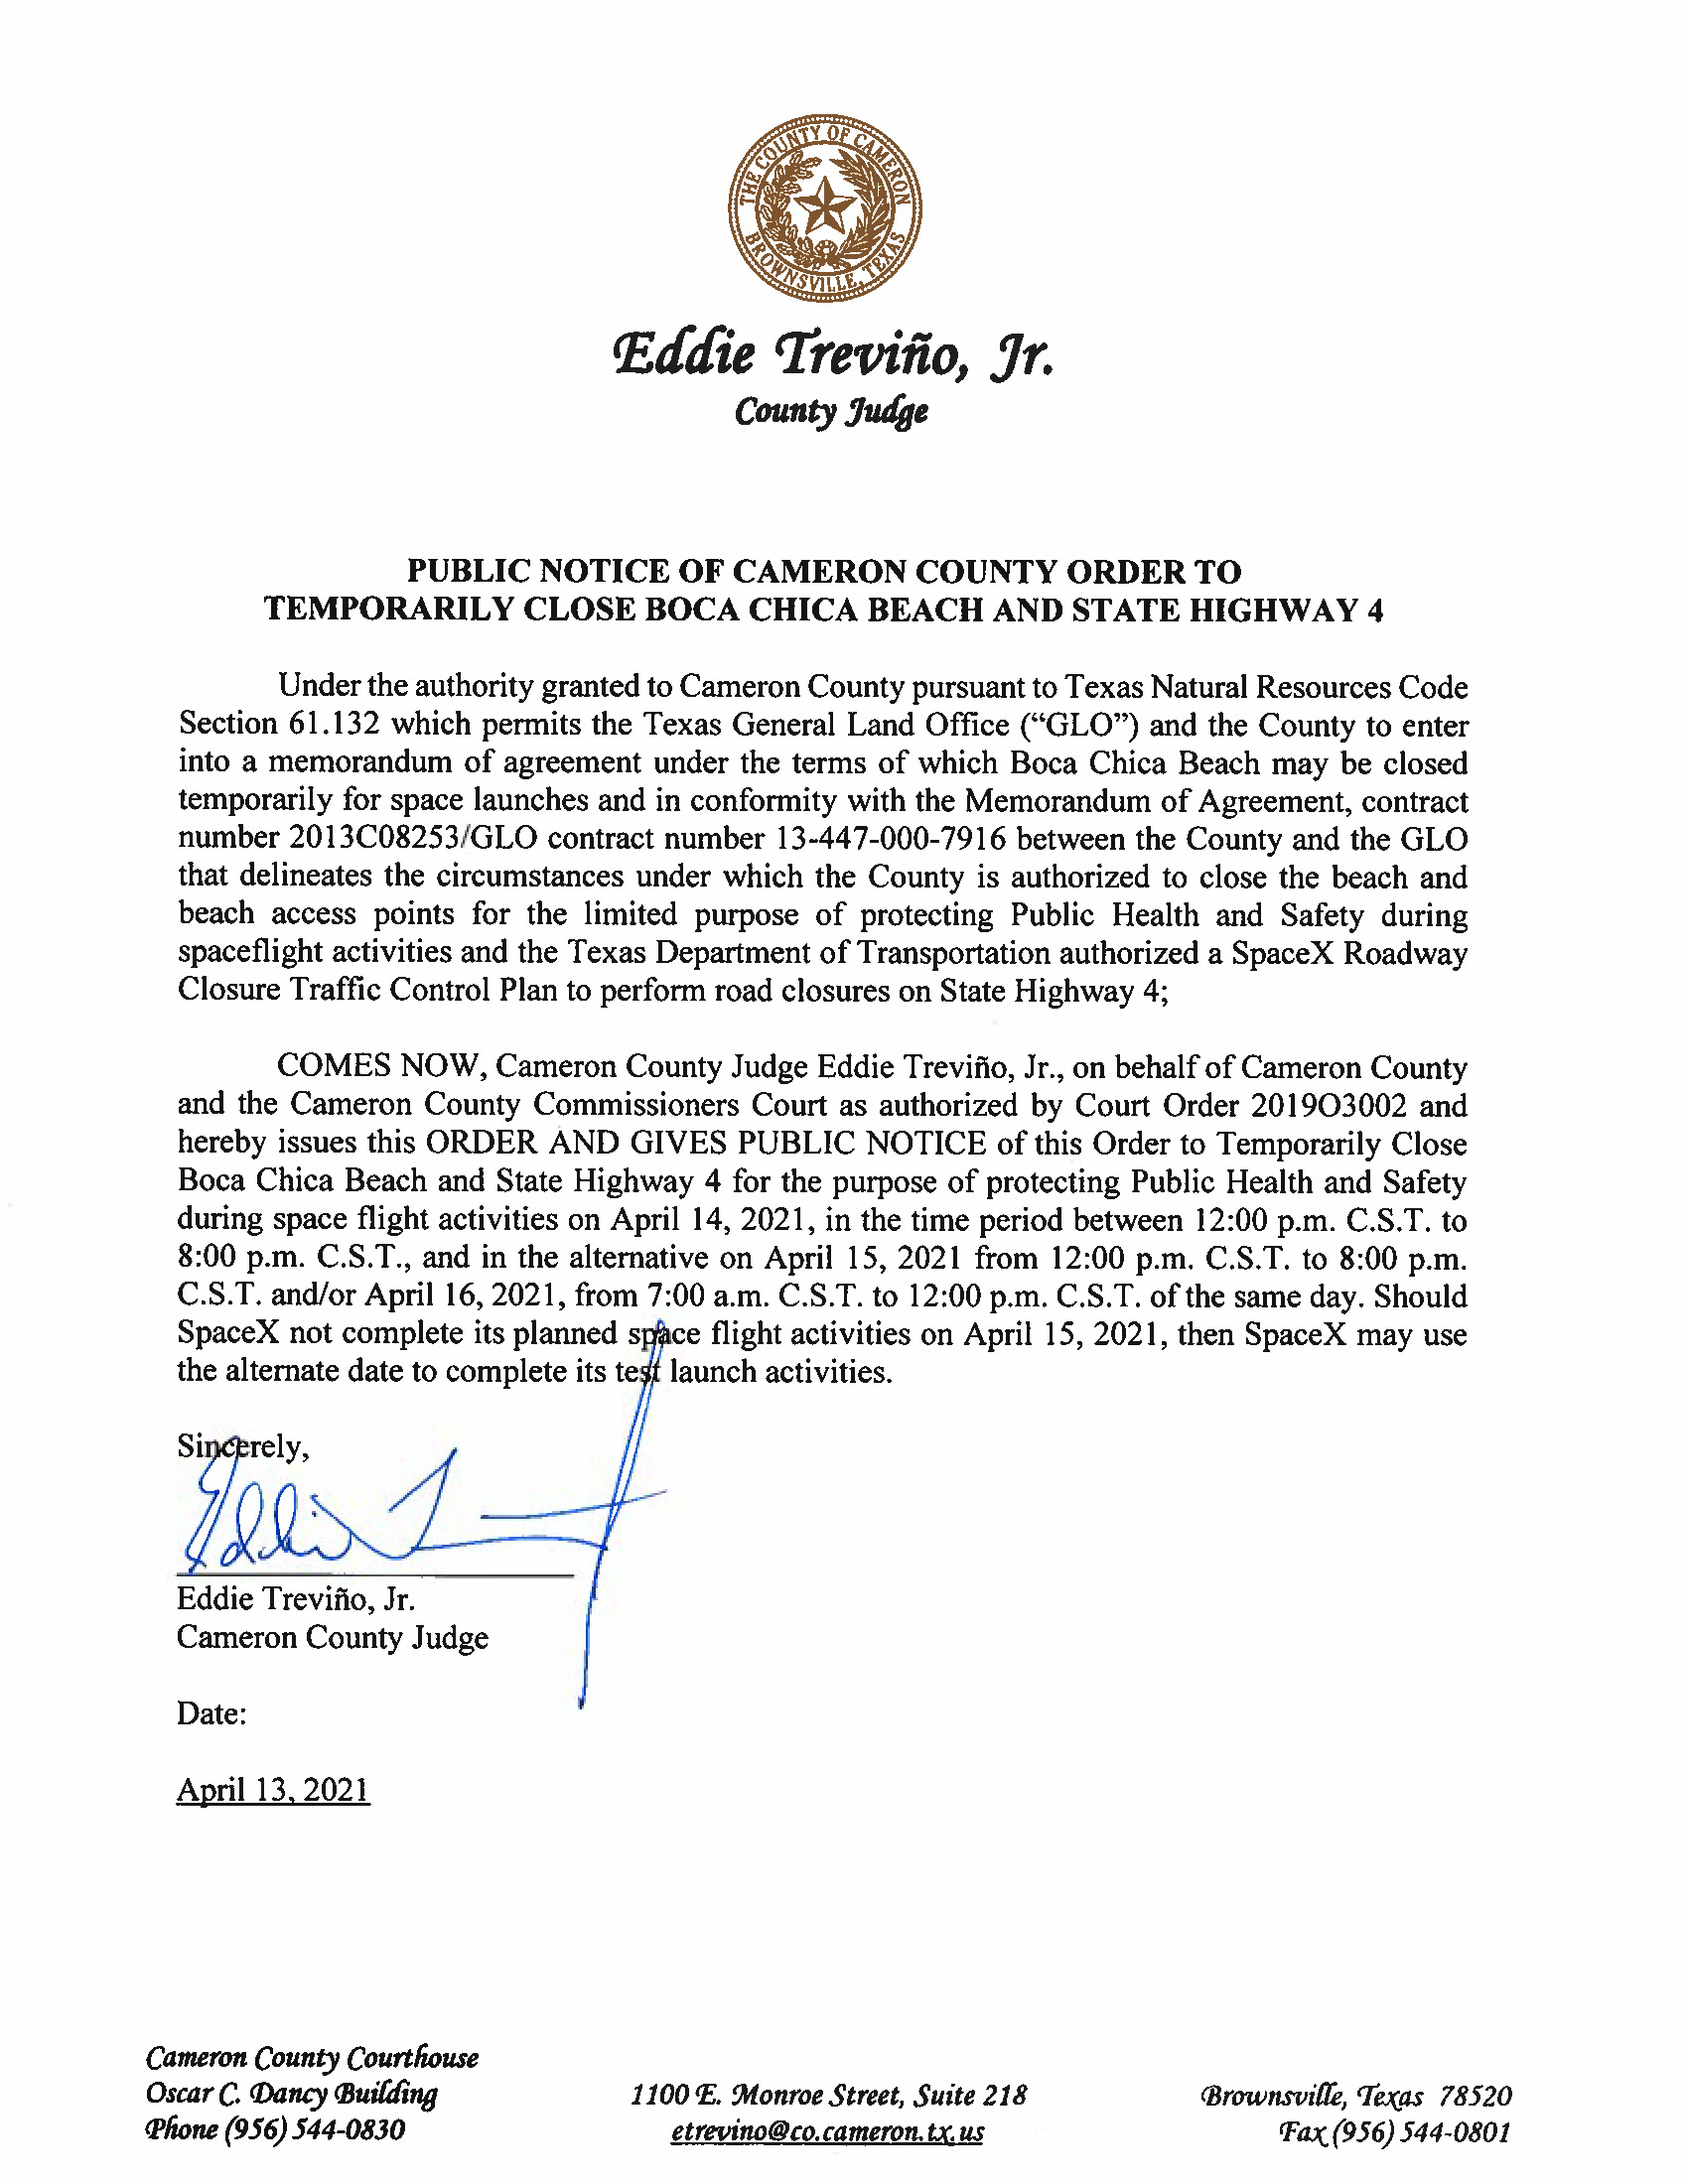 PUBLIC NOTICE OF CAMERON COUNTY ORDER TO TEMP. BEACH CLOSURE AND HWY.04.14.2021